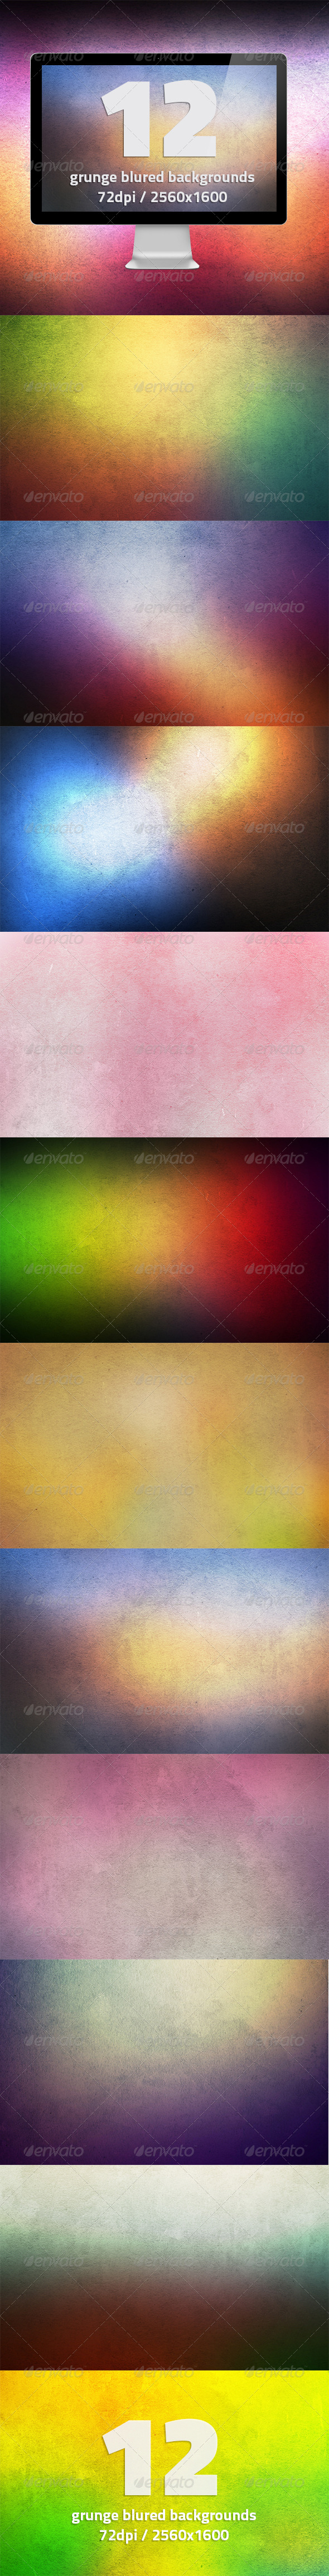 12 HQ Grunge Blurred Backgrounds Vol.2 - Abstract Backgrounds